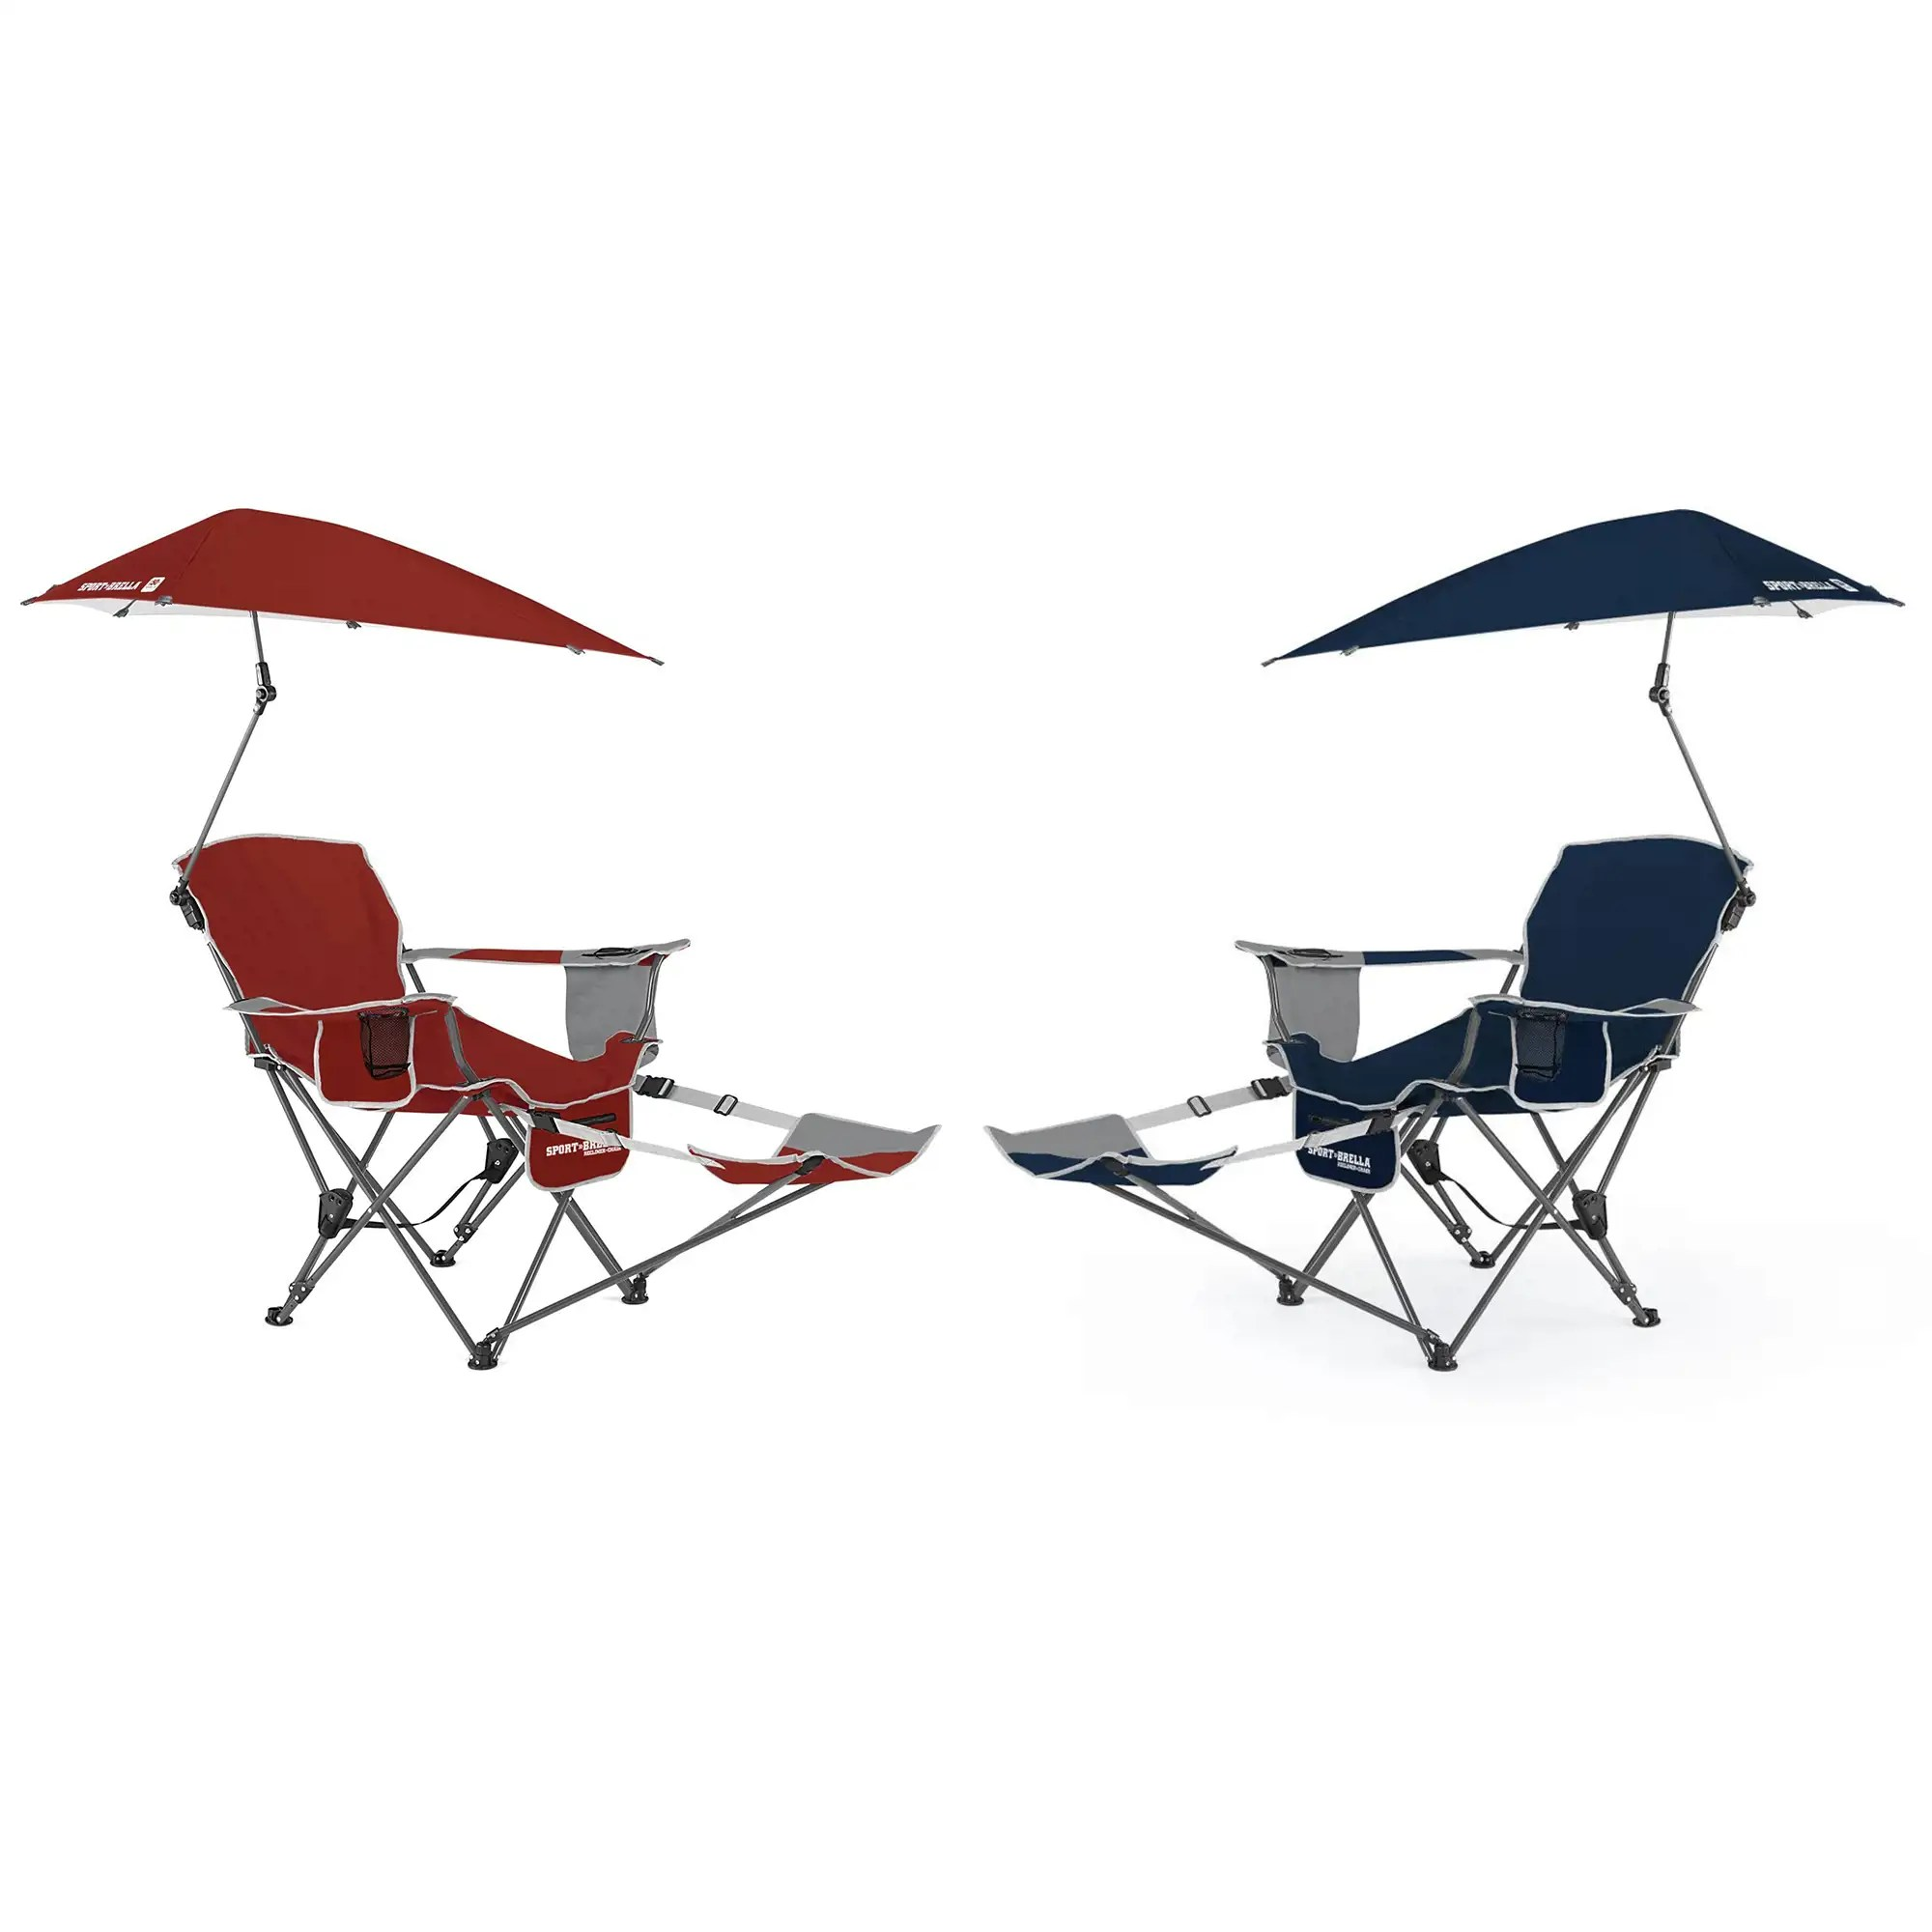 super brella chair lift chairs for stairs sport vminnovations com